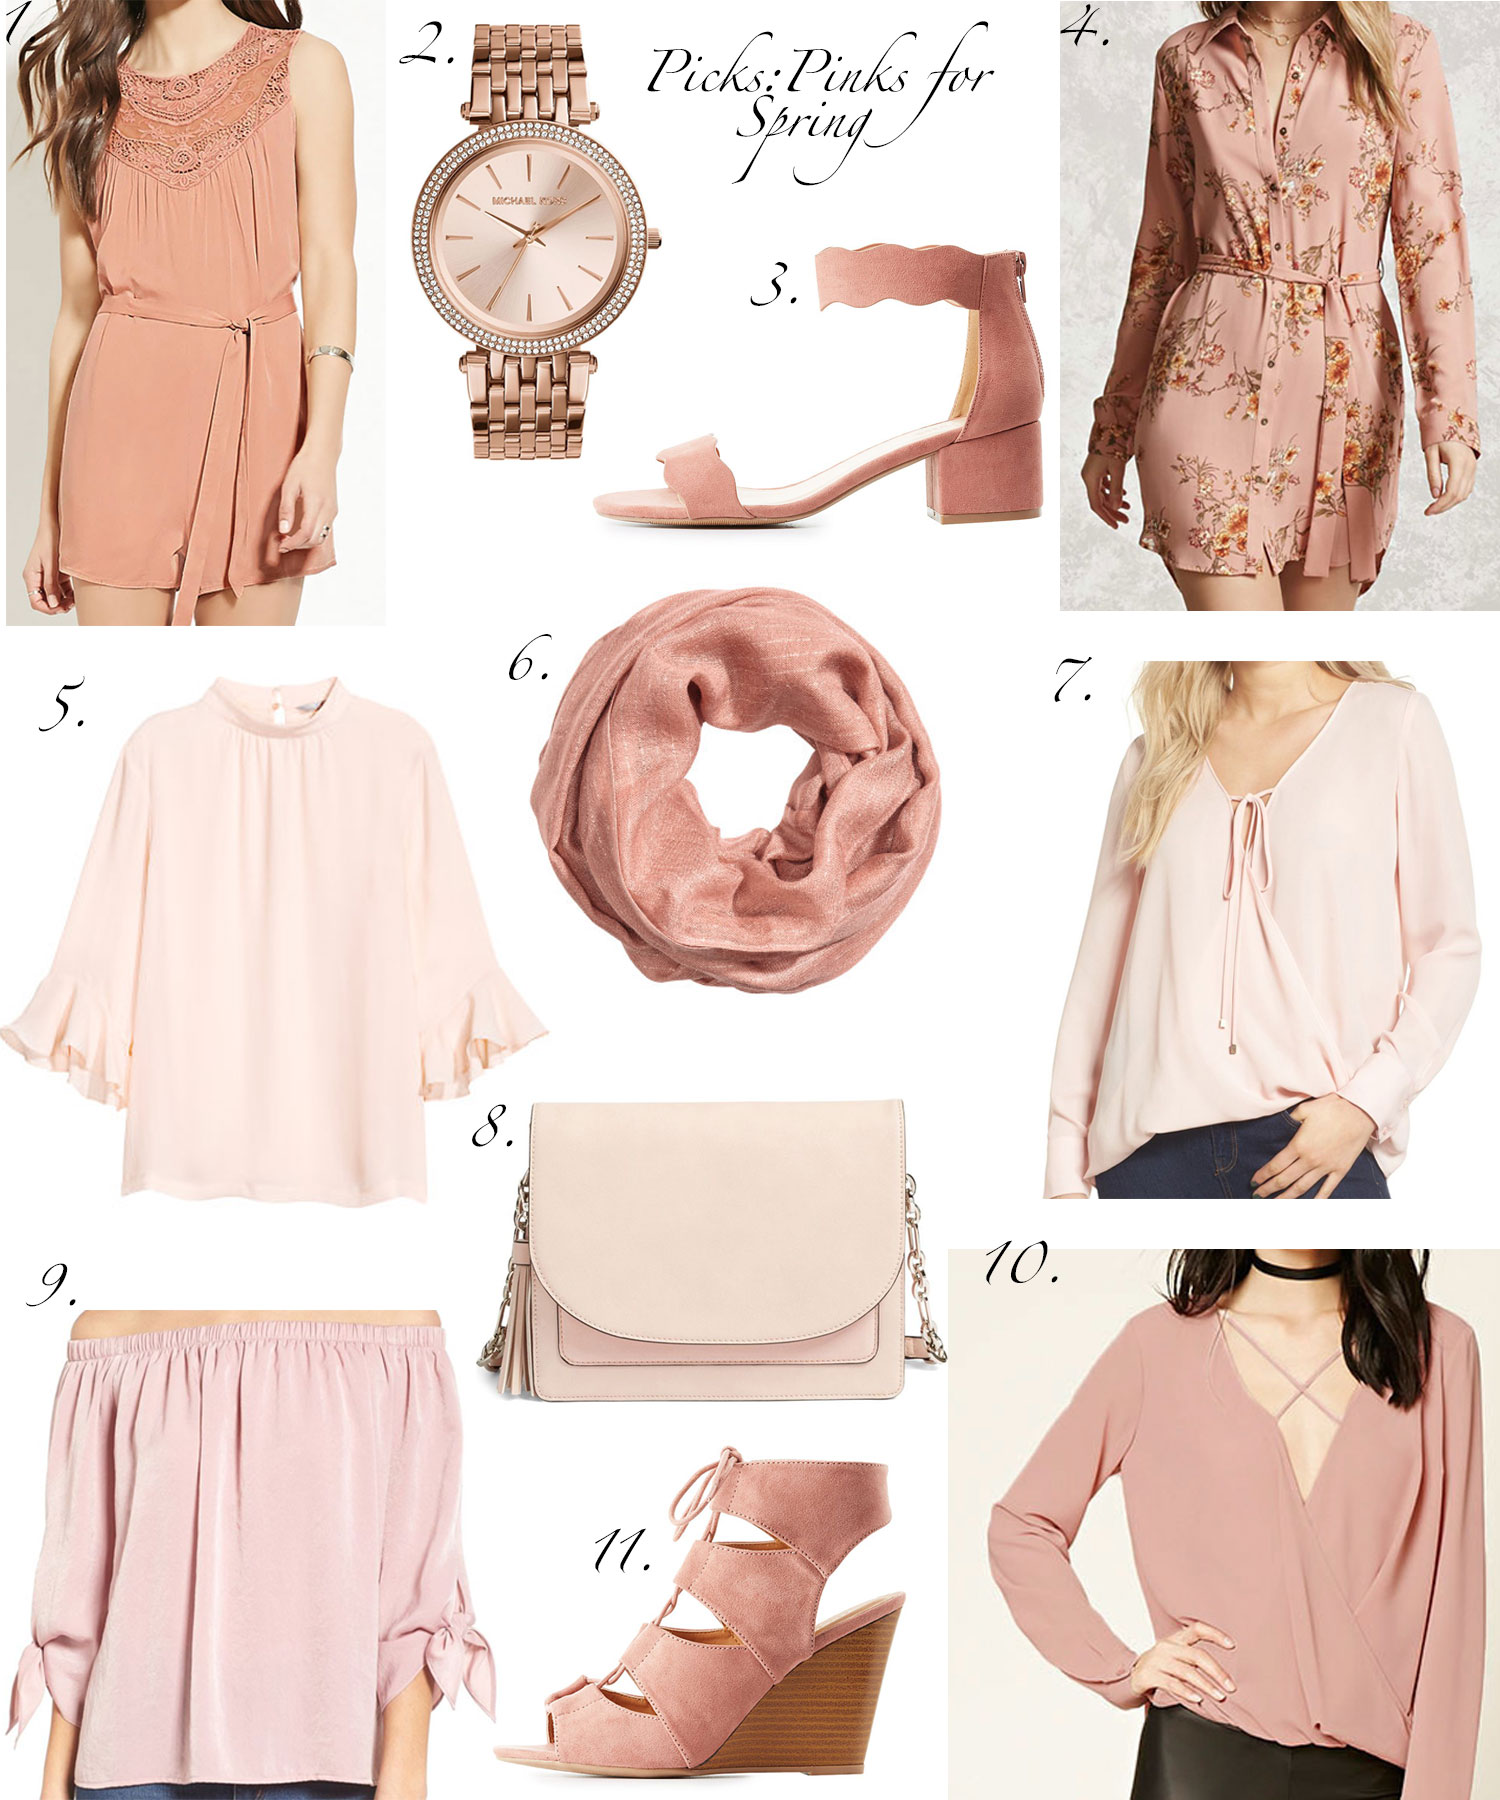 picks pinks for spring